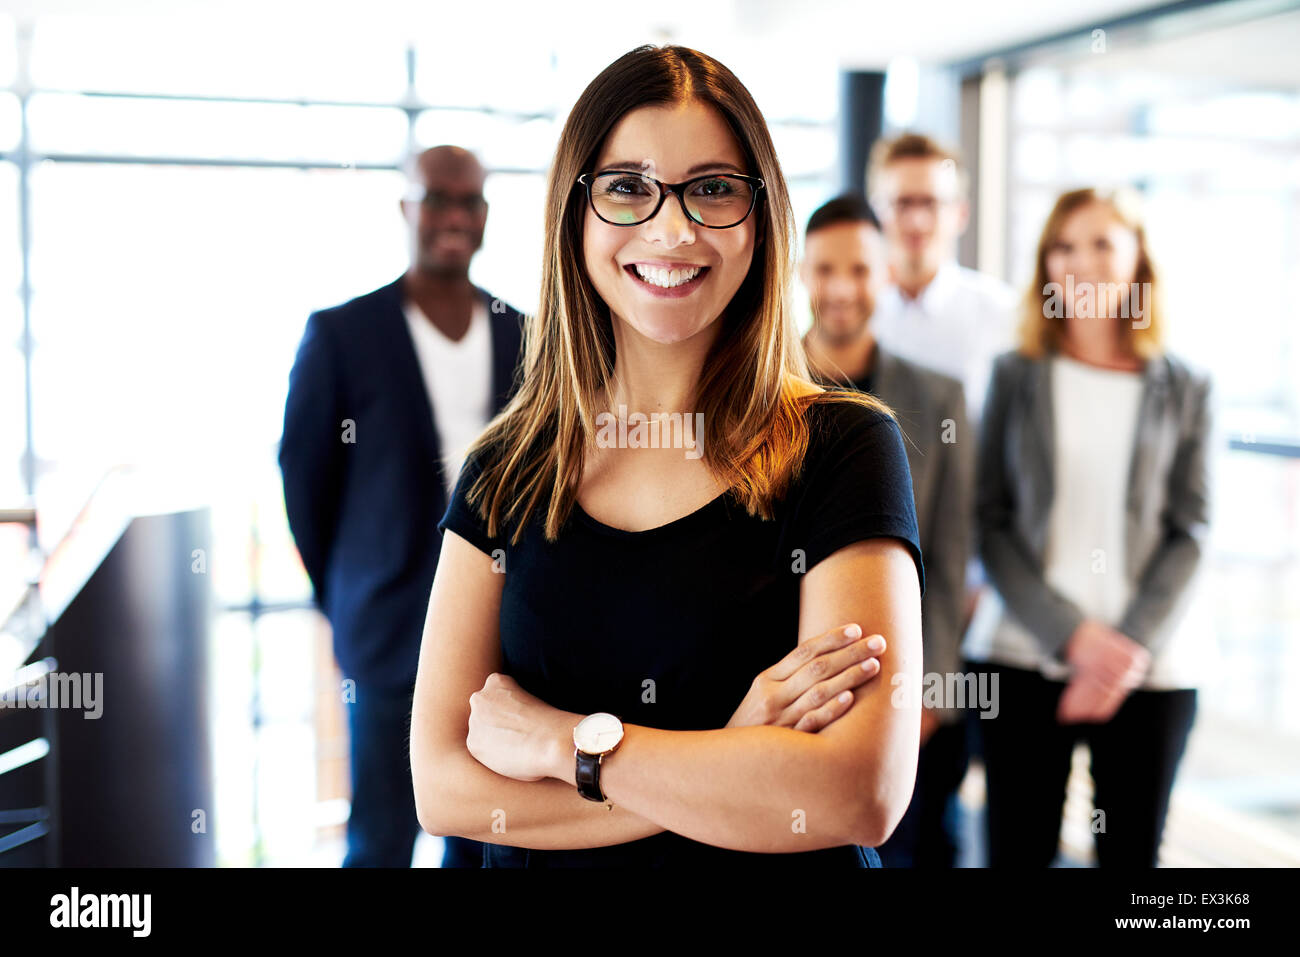 Young white female executive standing in front of colleagues with arms crossed and smiling - Stock Image